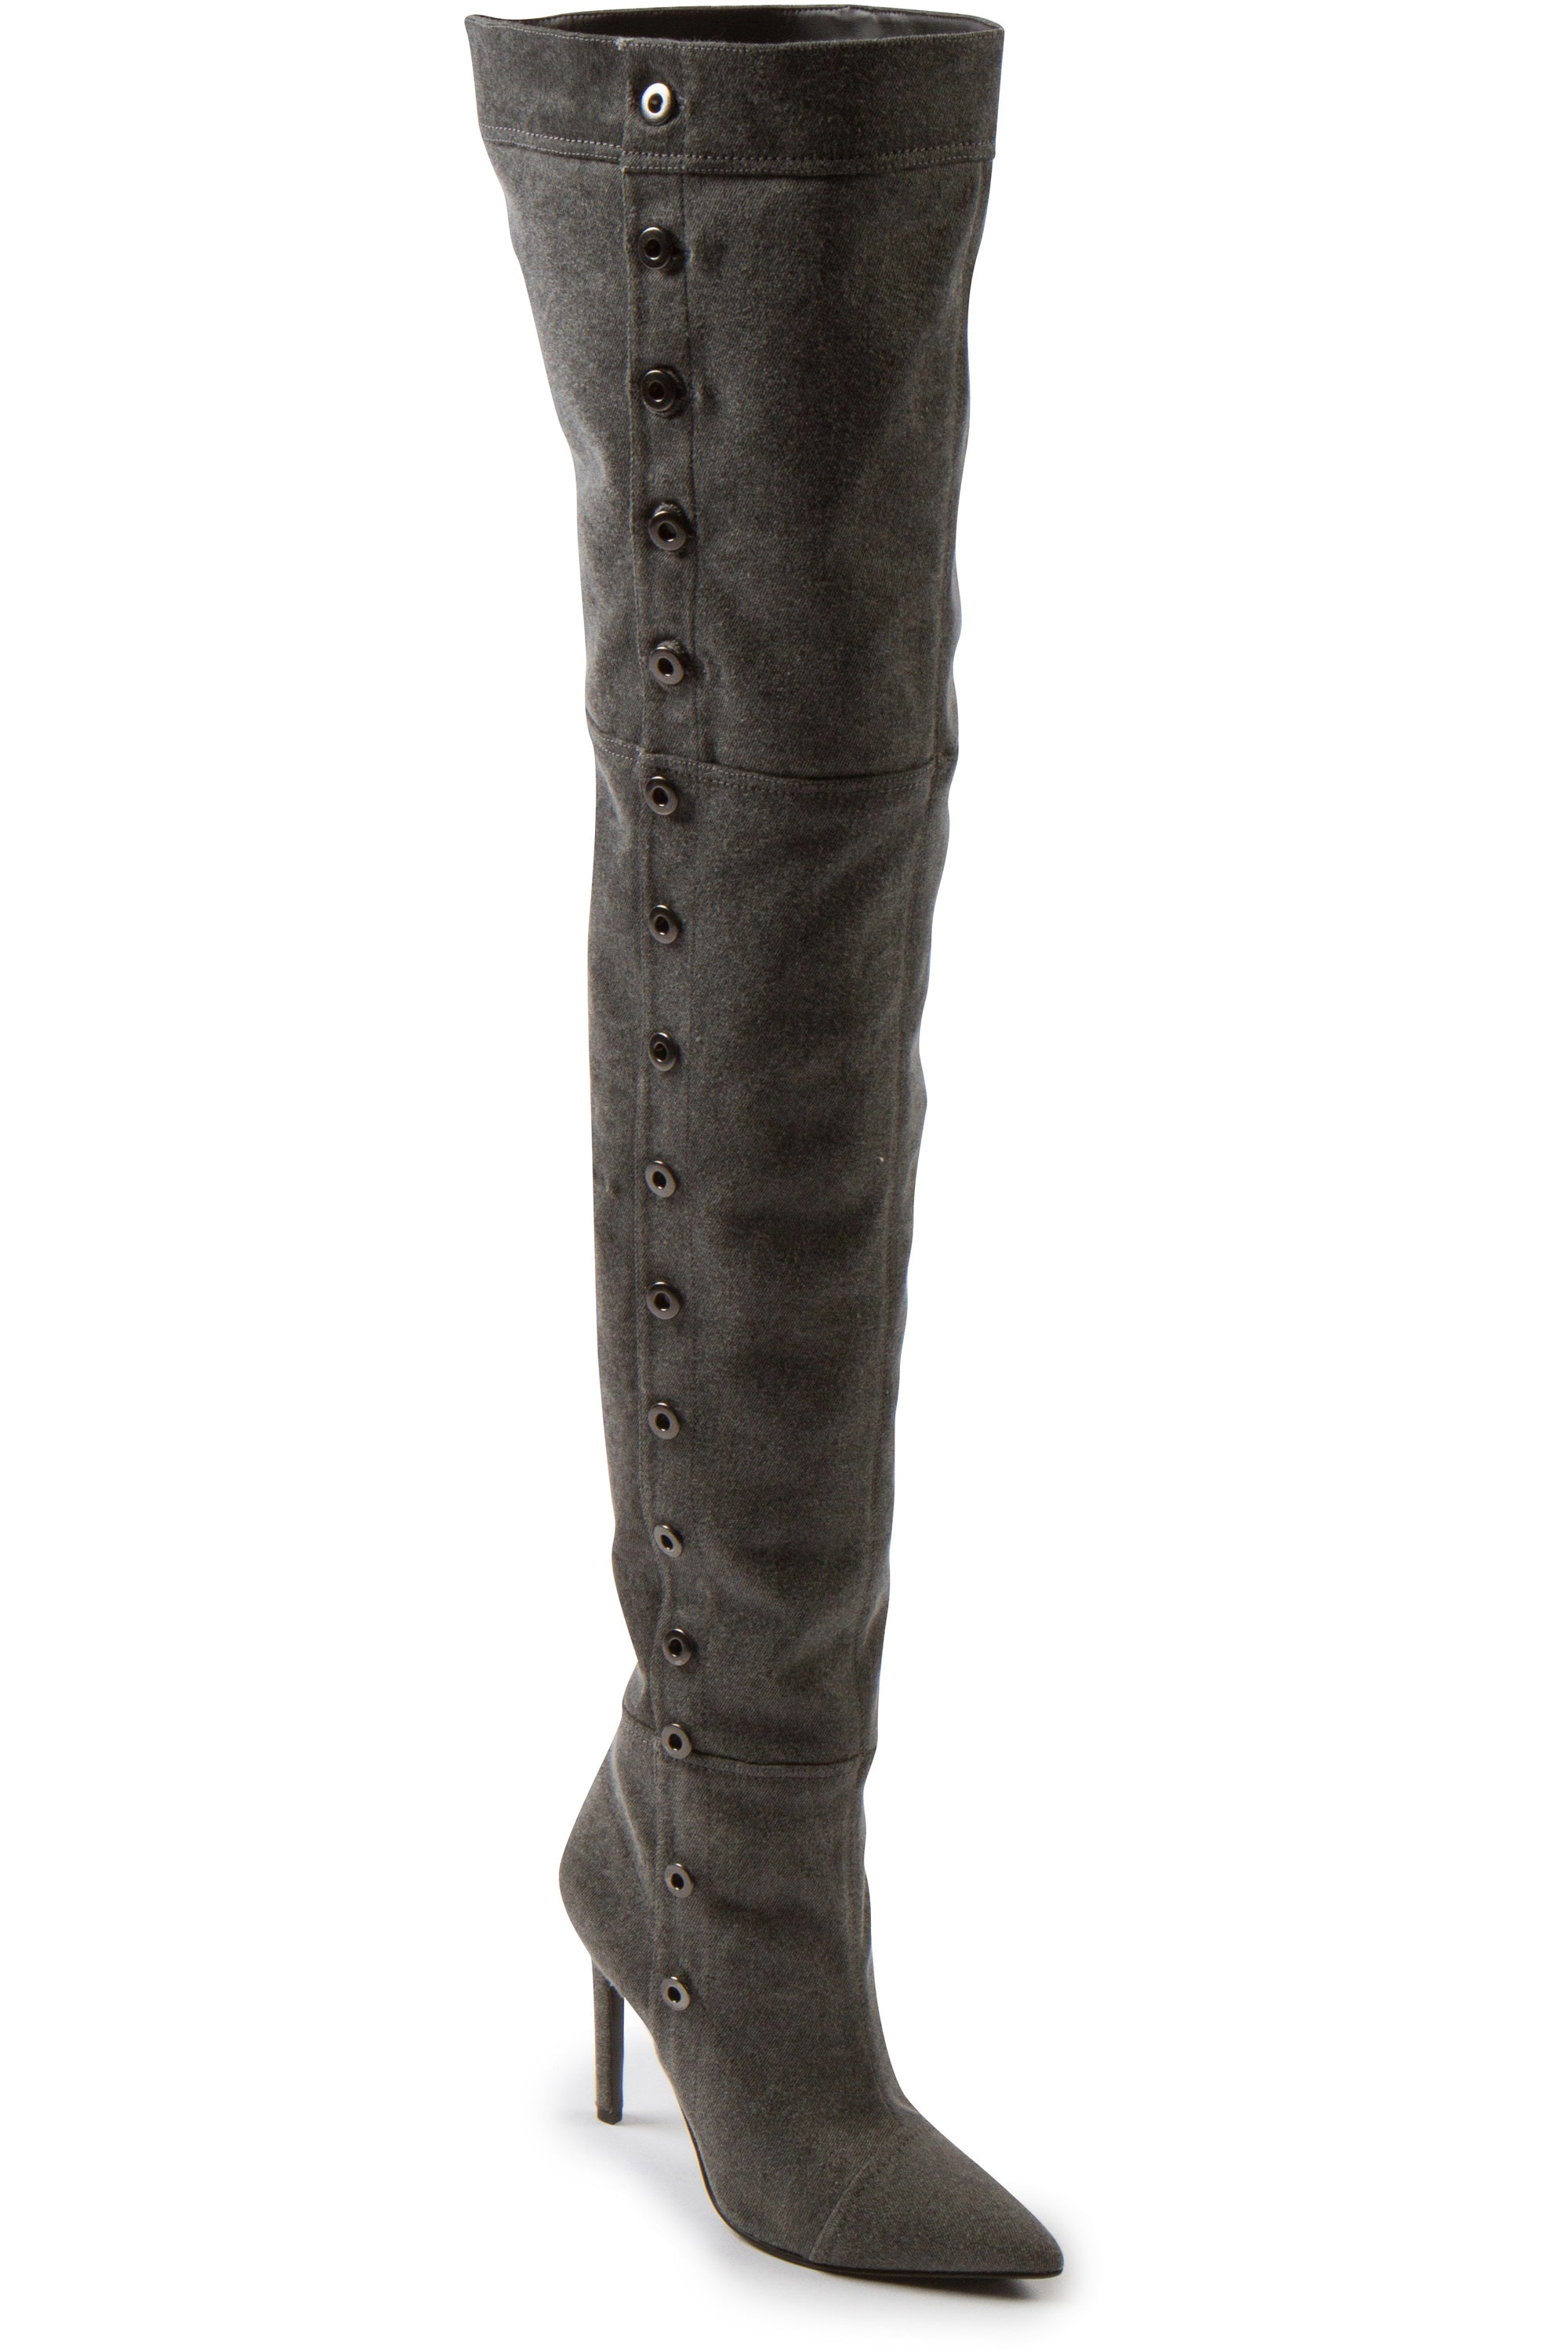 AVERIE OVER THE KNEE BOOT SHOES by KENDALL + KYLIE